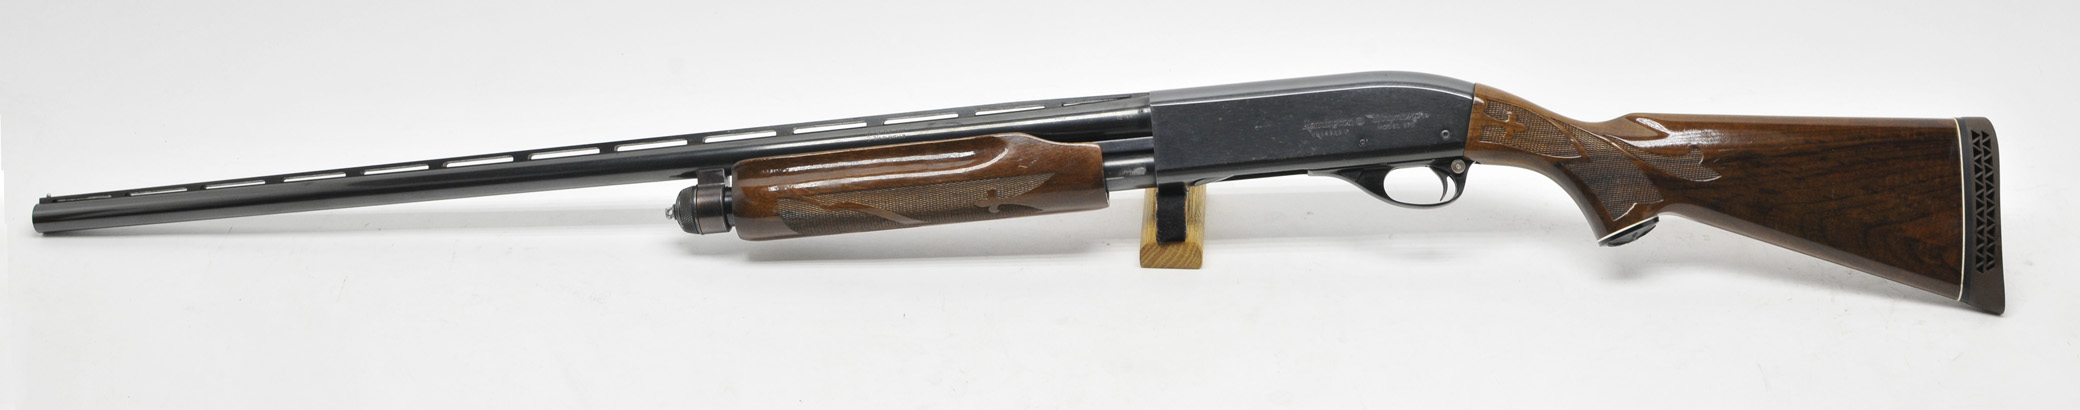 remington model 870 custom shop inc